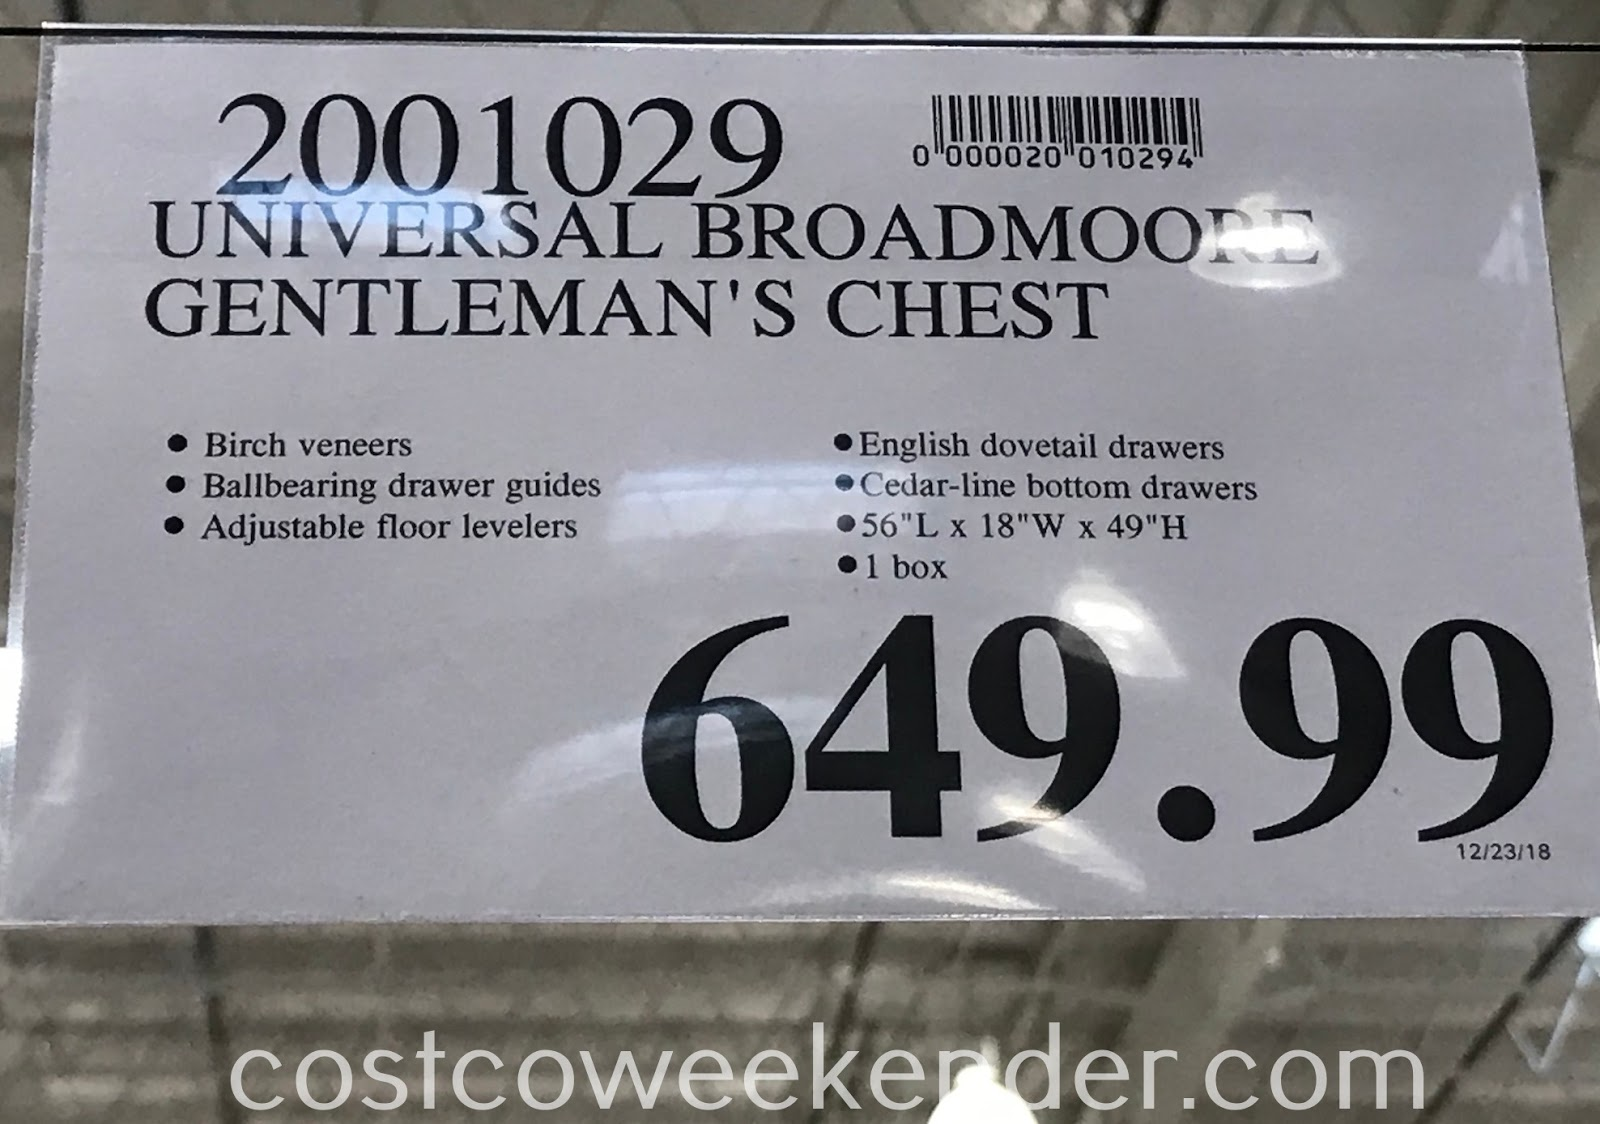 Deal for the Universal Broadmoore Gentleman's Chest at Costco